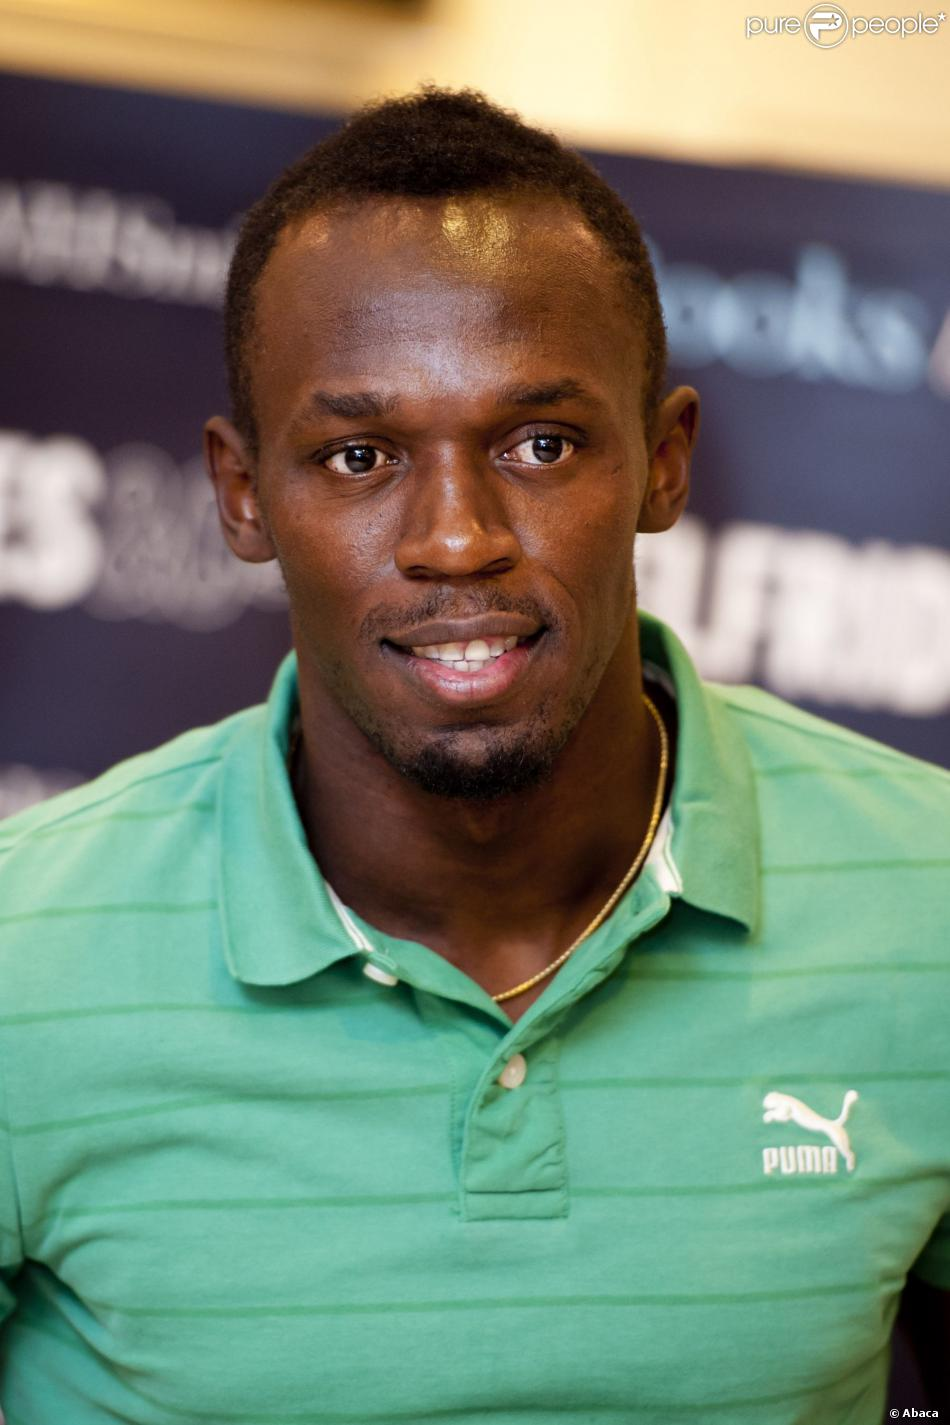 The 31-year old son of father Wellesley Bolt and mother Jennifer Bolt, 196 cm tall Usain Bolt in 2017 photo